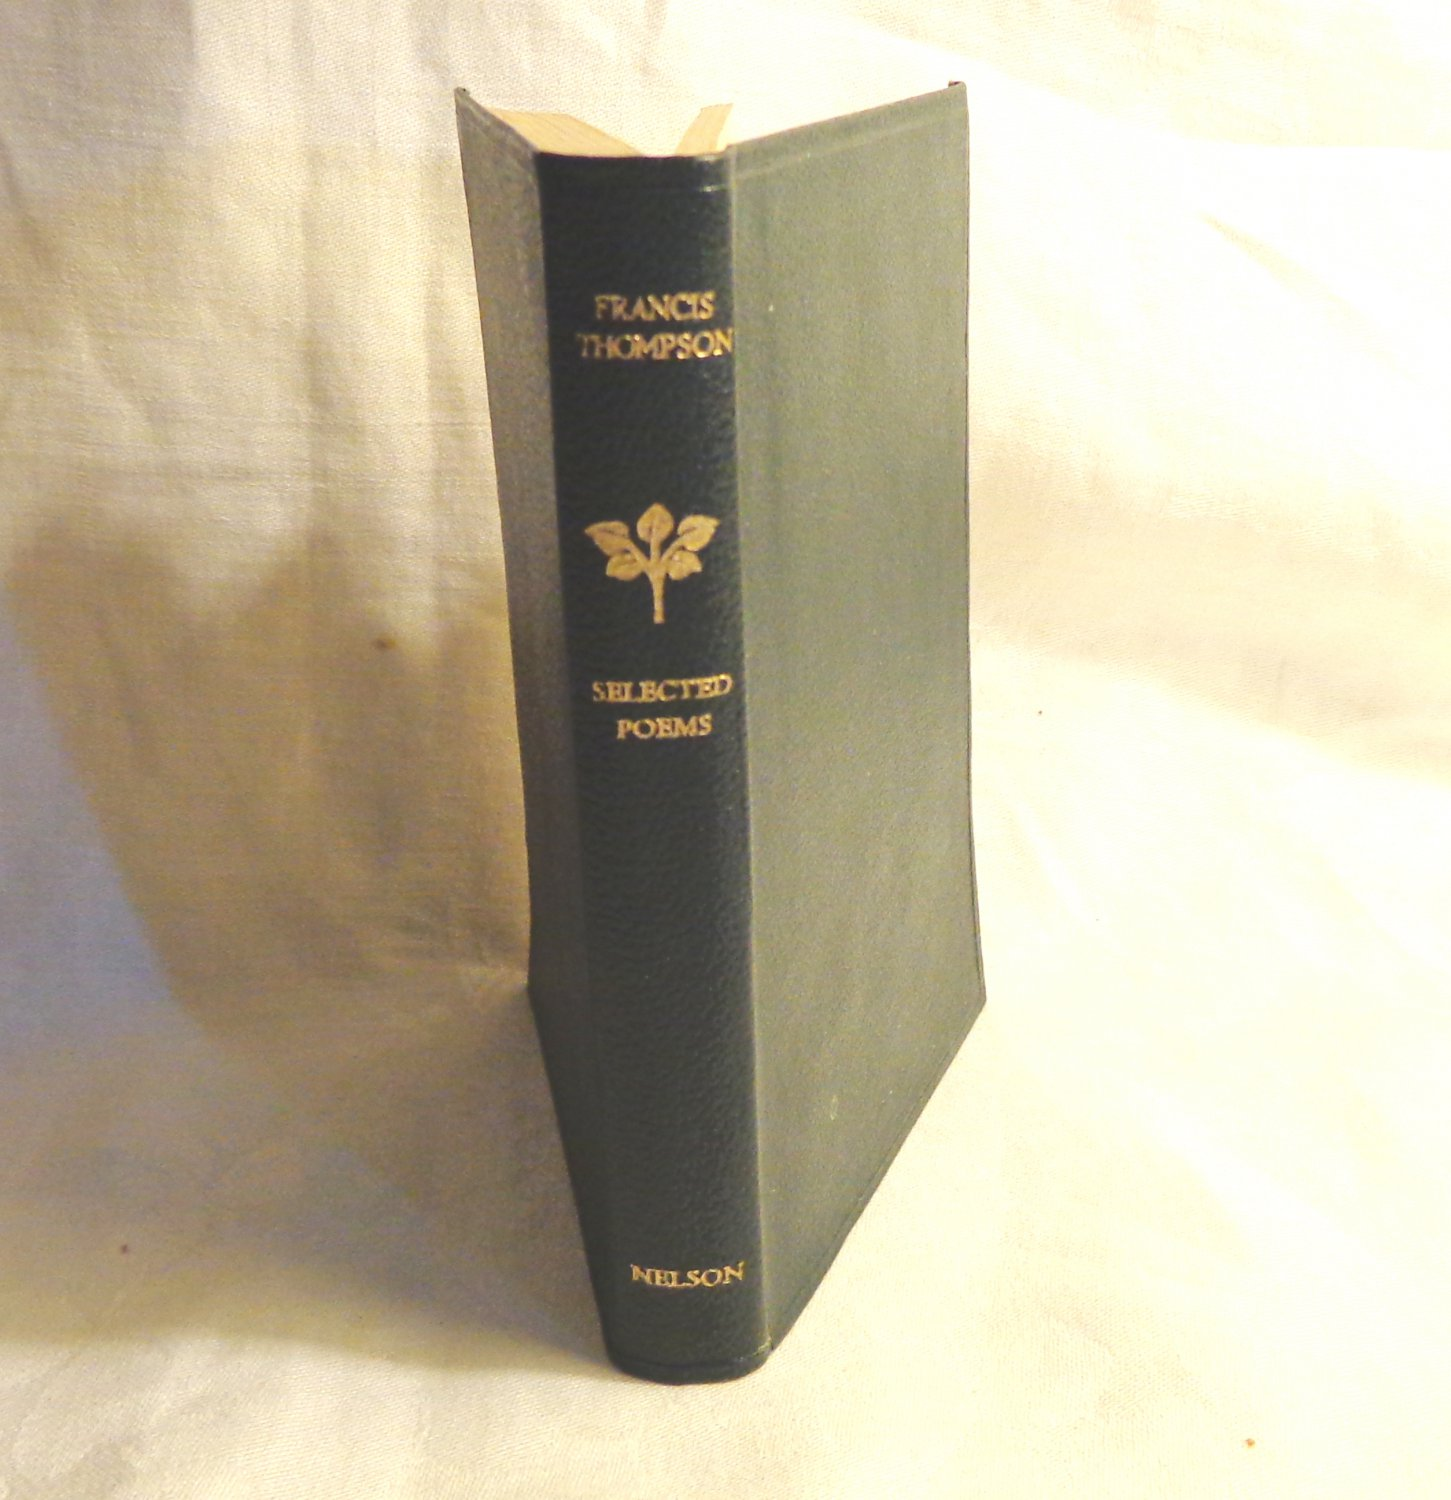 Selected Poems Francis Thompson pocket edition antique book AL1537